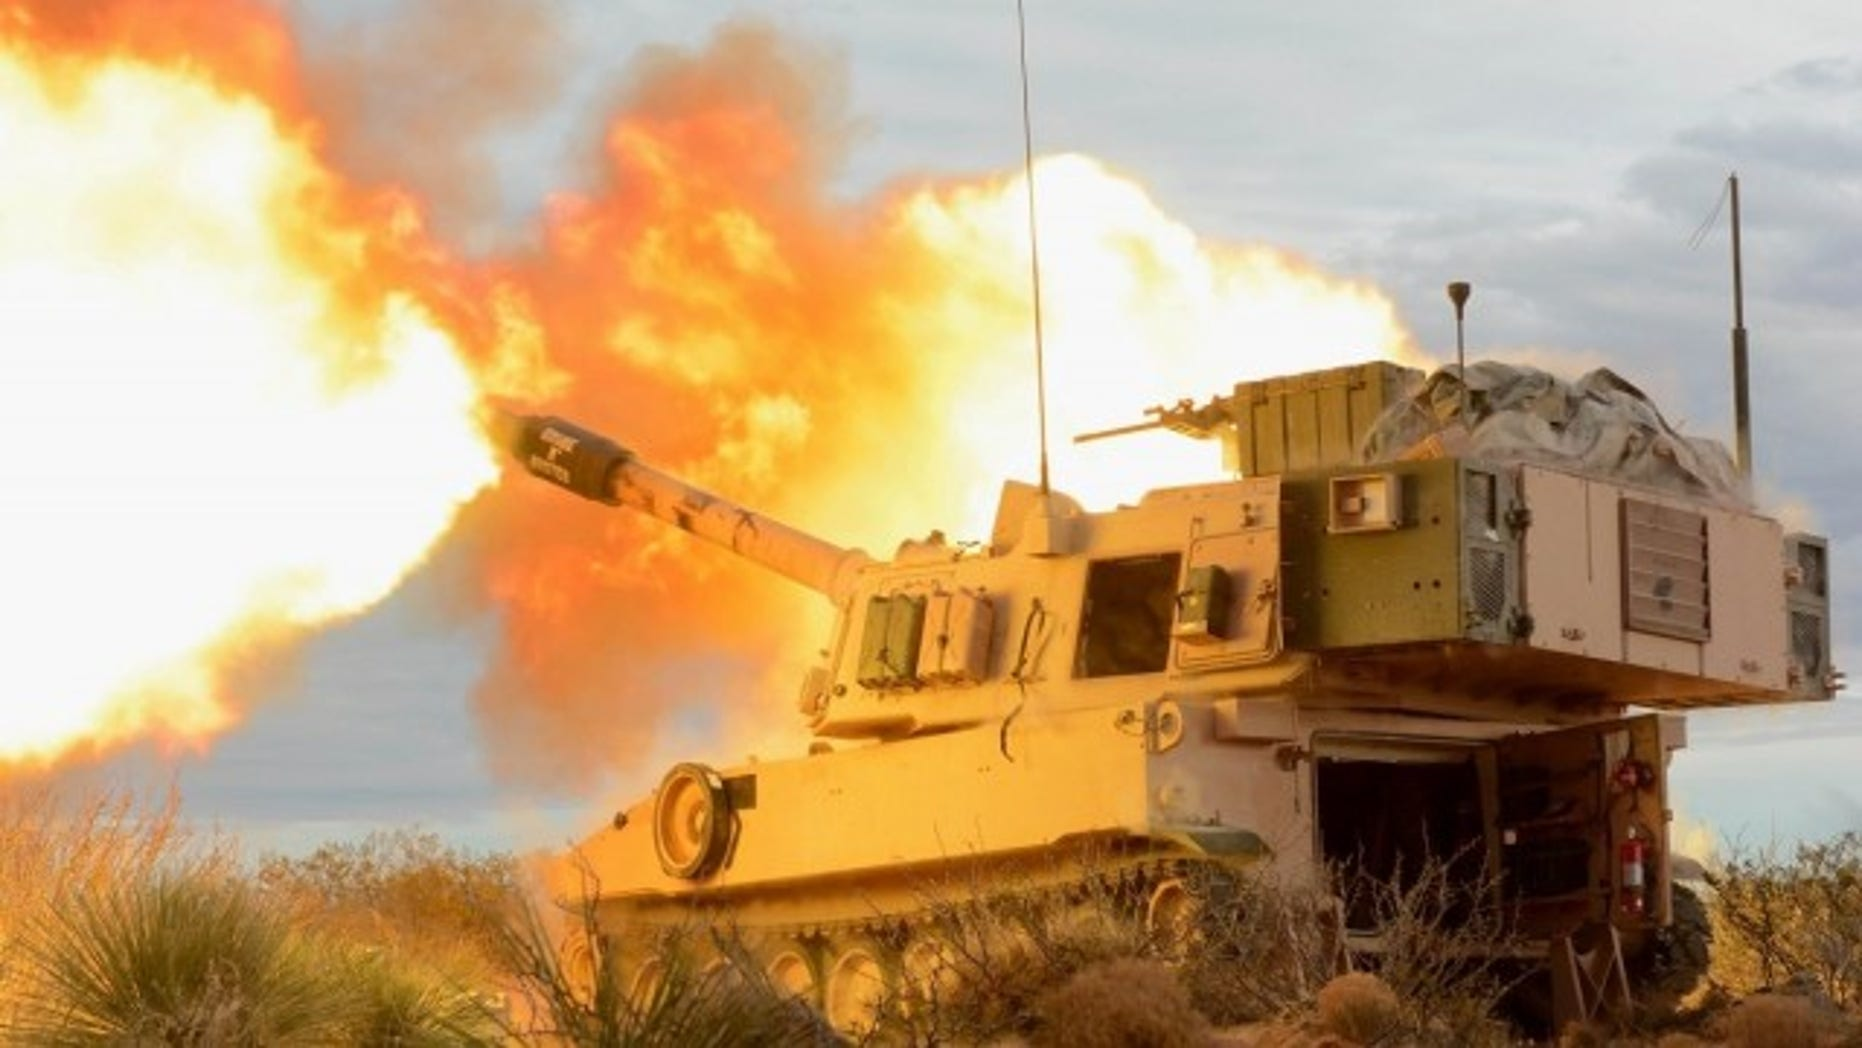 Army engineers more lethal and more explosive fragmenting missiles, artillery